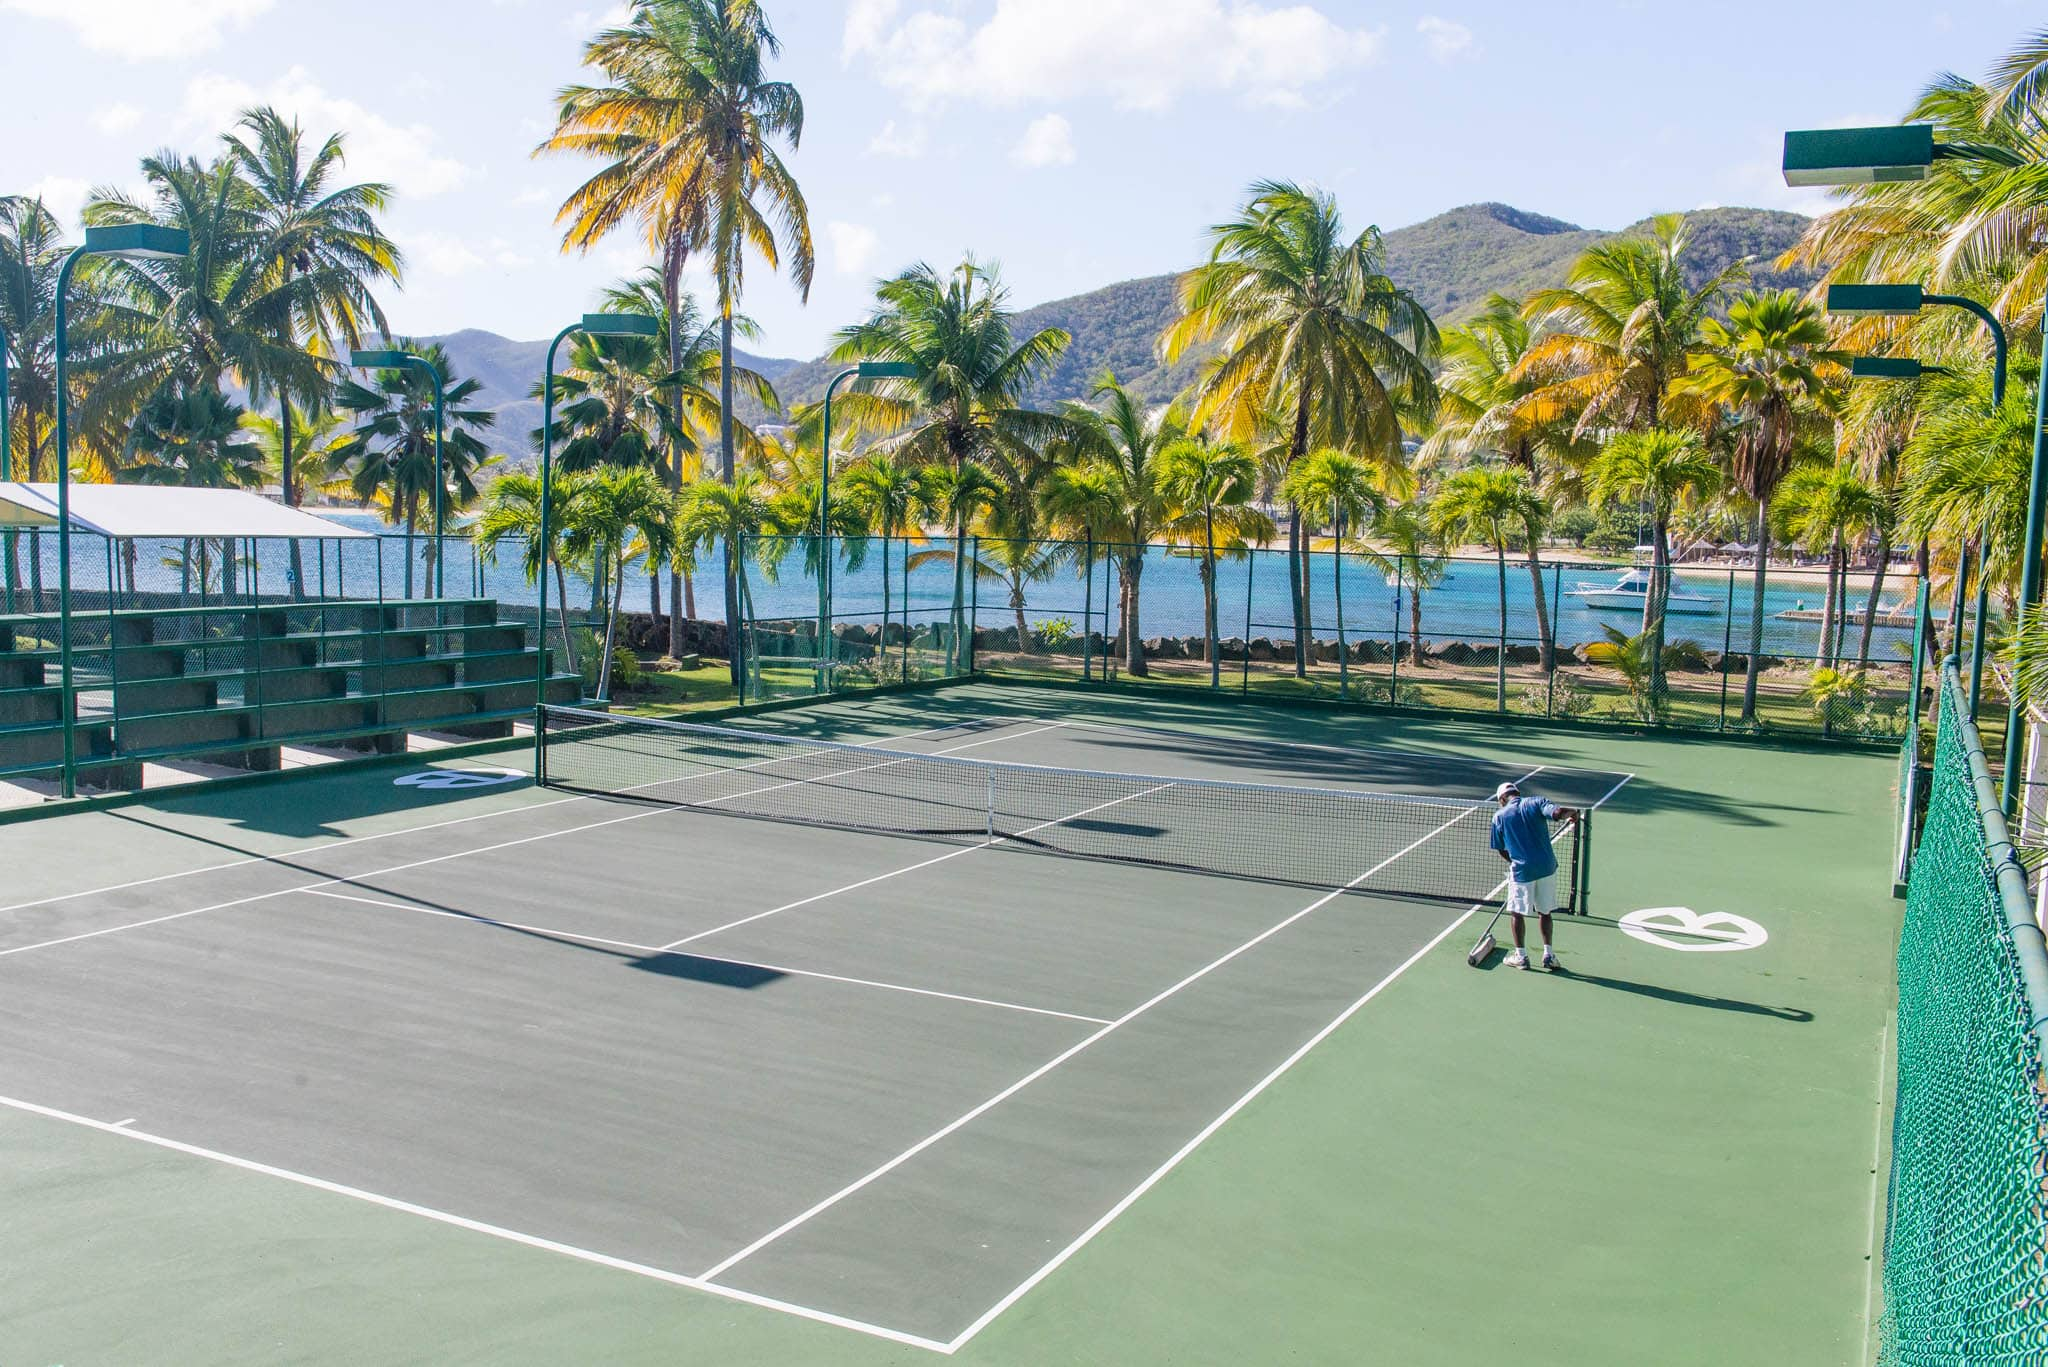 There is probably no better place to play tennis in the Caribbean than here.